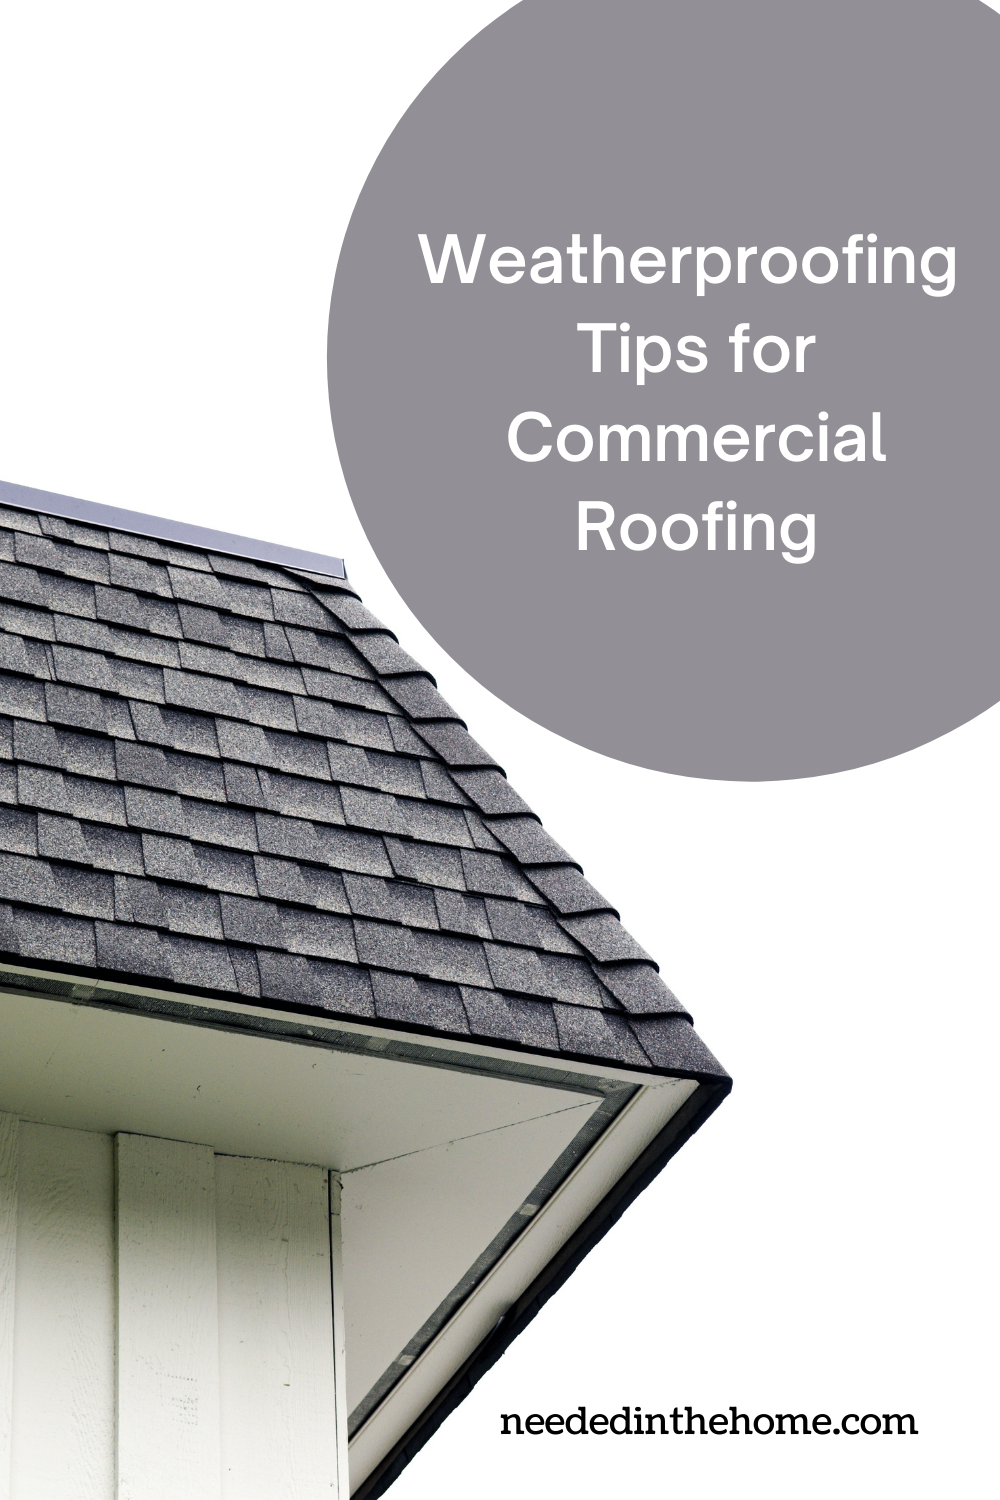 Weatherproofing Tips for Commercial Roofing corner of a gutterless roof neededinthehome